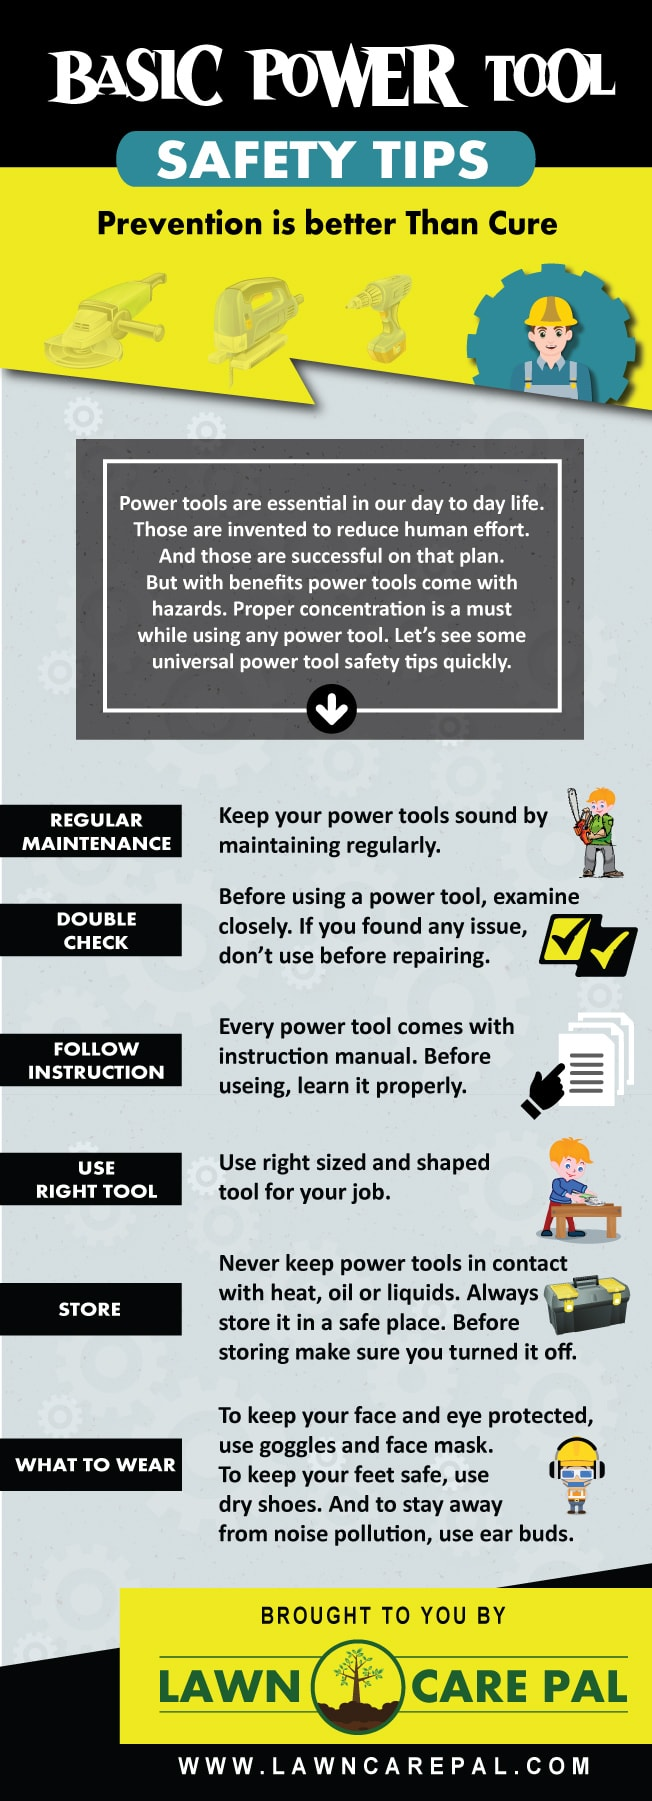 Basic Power Tool Safety Tips Infographic